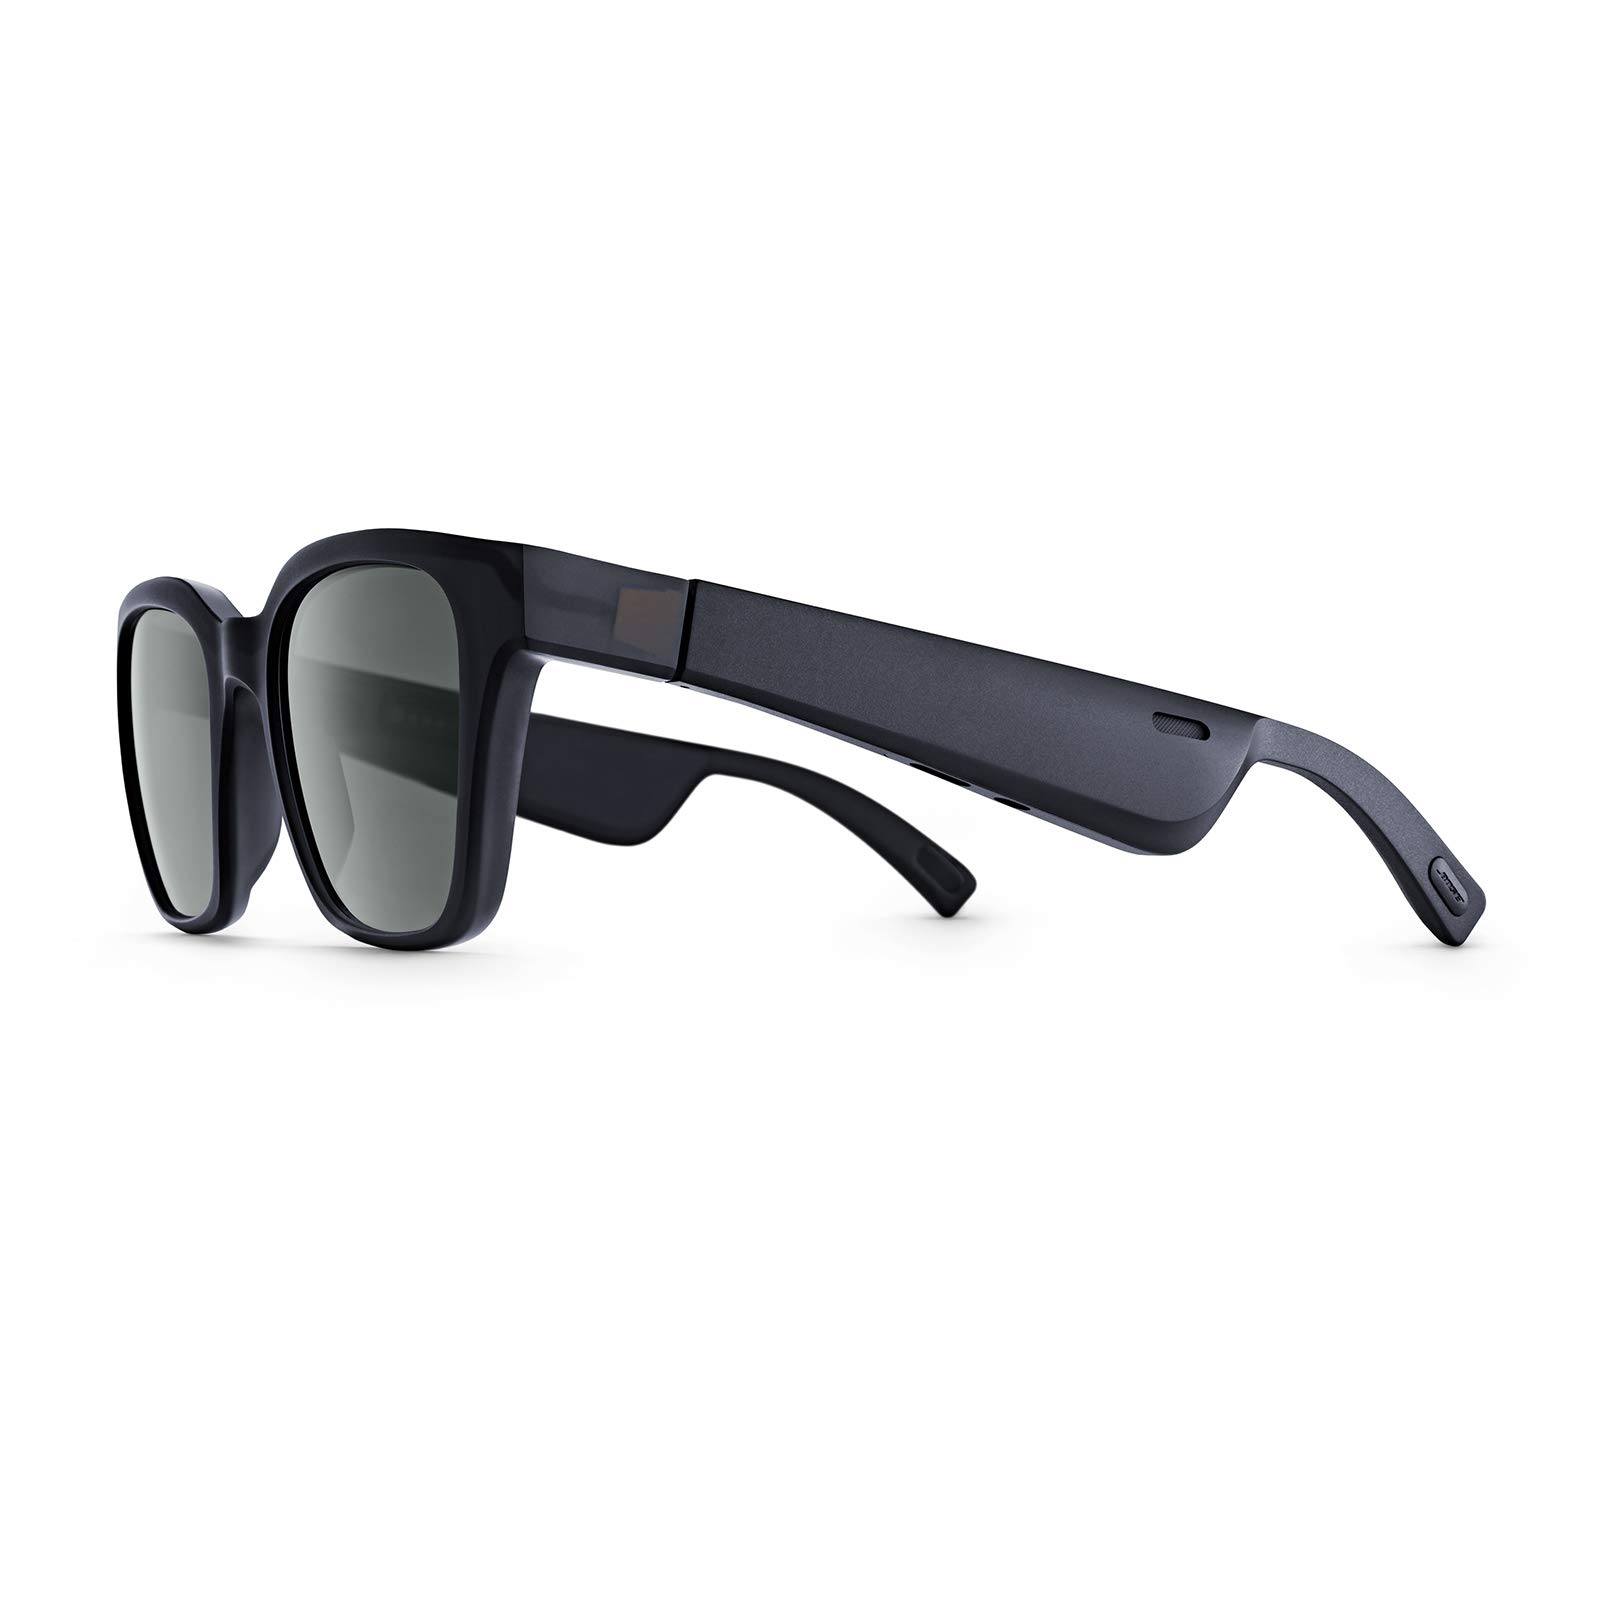 Bose Frames Audio Sunglasses, Alto, Black - with Bluetooth Connectivity by Bose (Image #2)